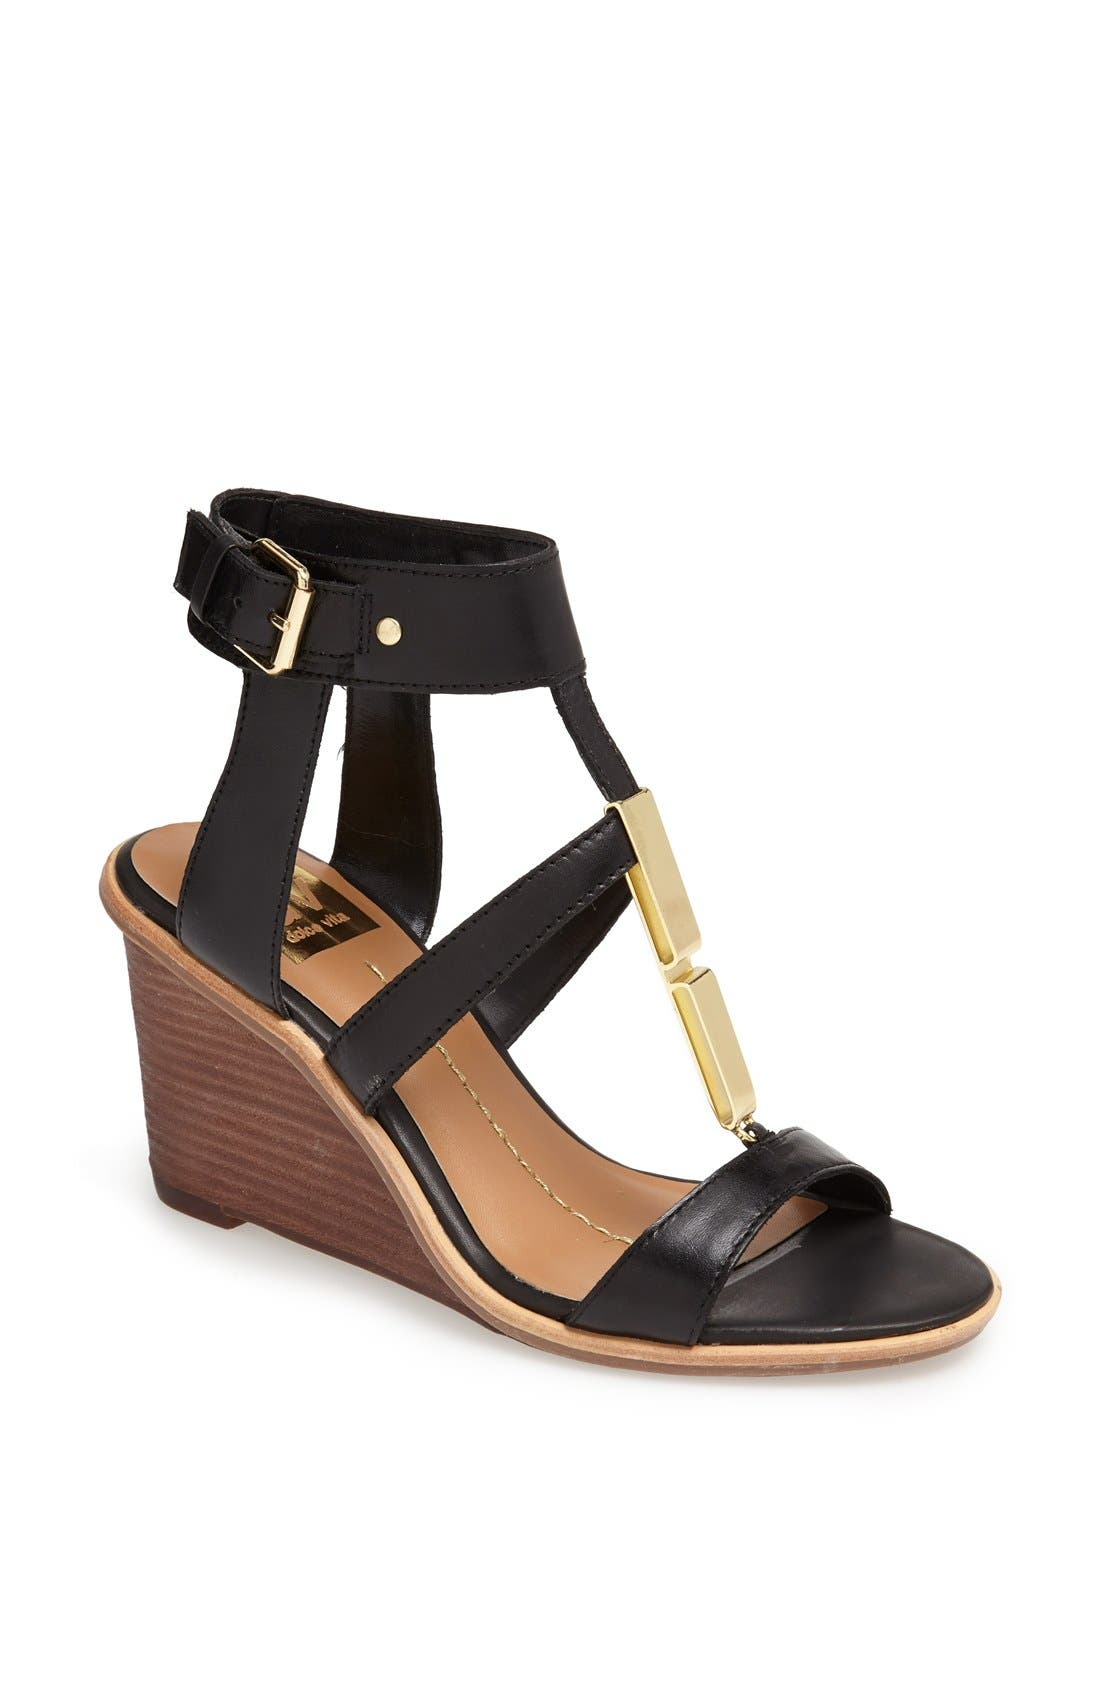 Alternate Image 1 Selected - DV by Dolce Vita 'Cecily' Wedge Sandal